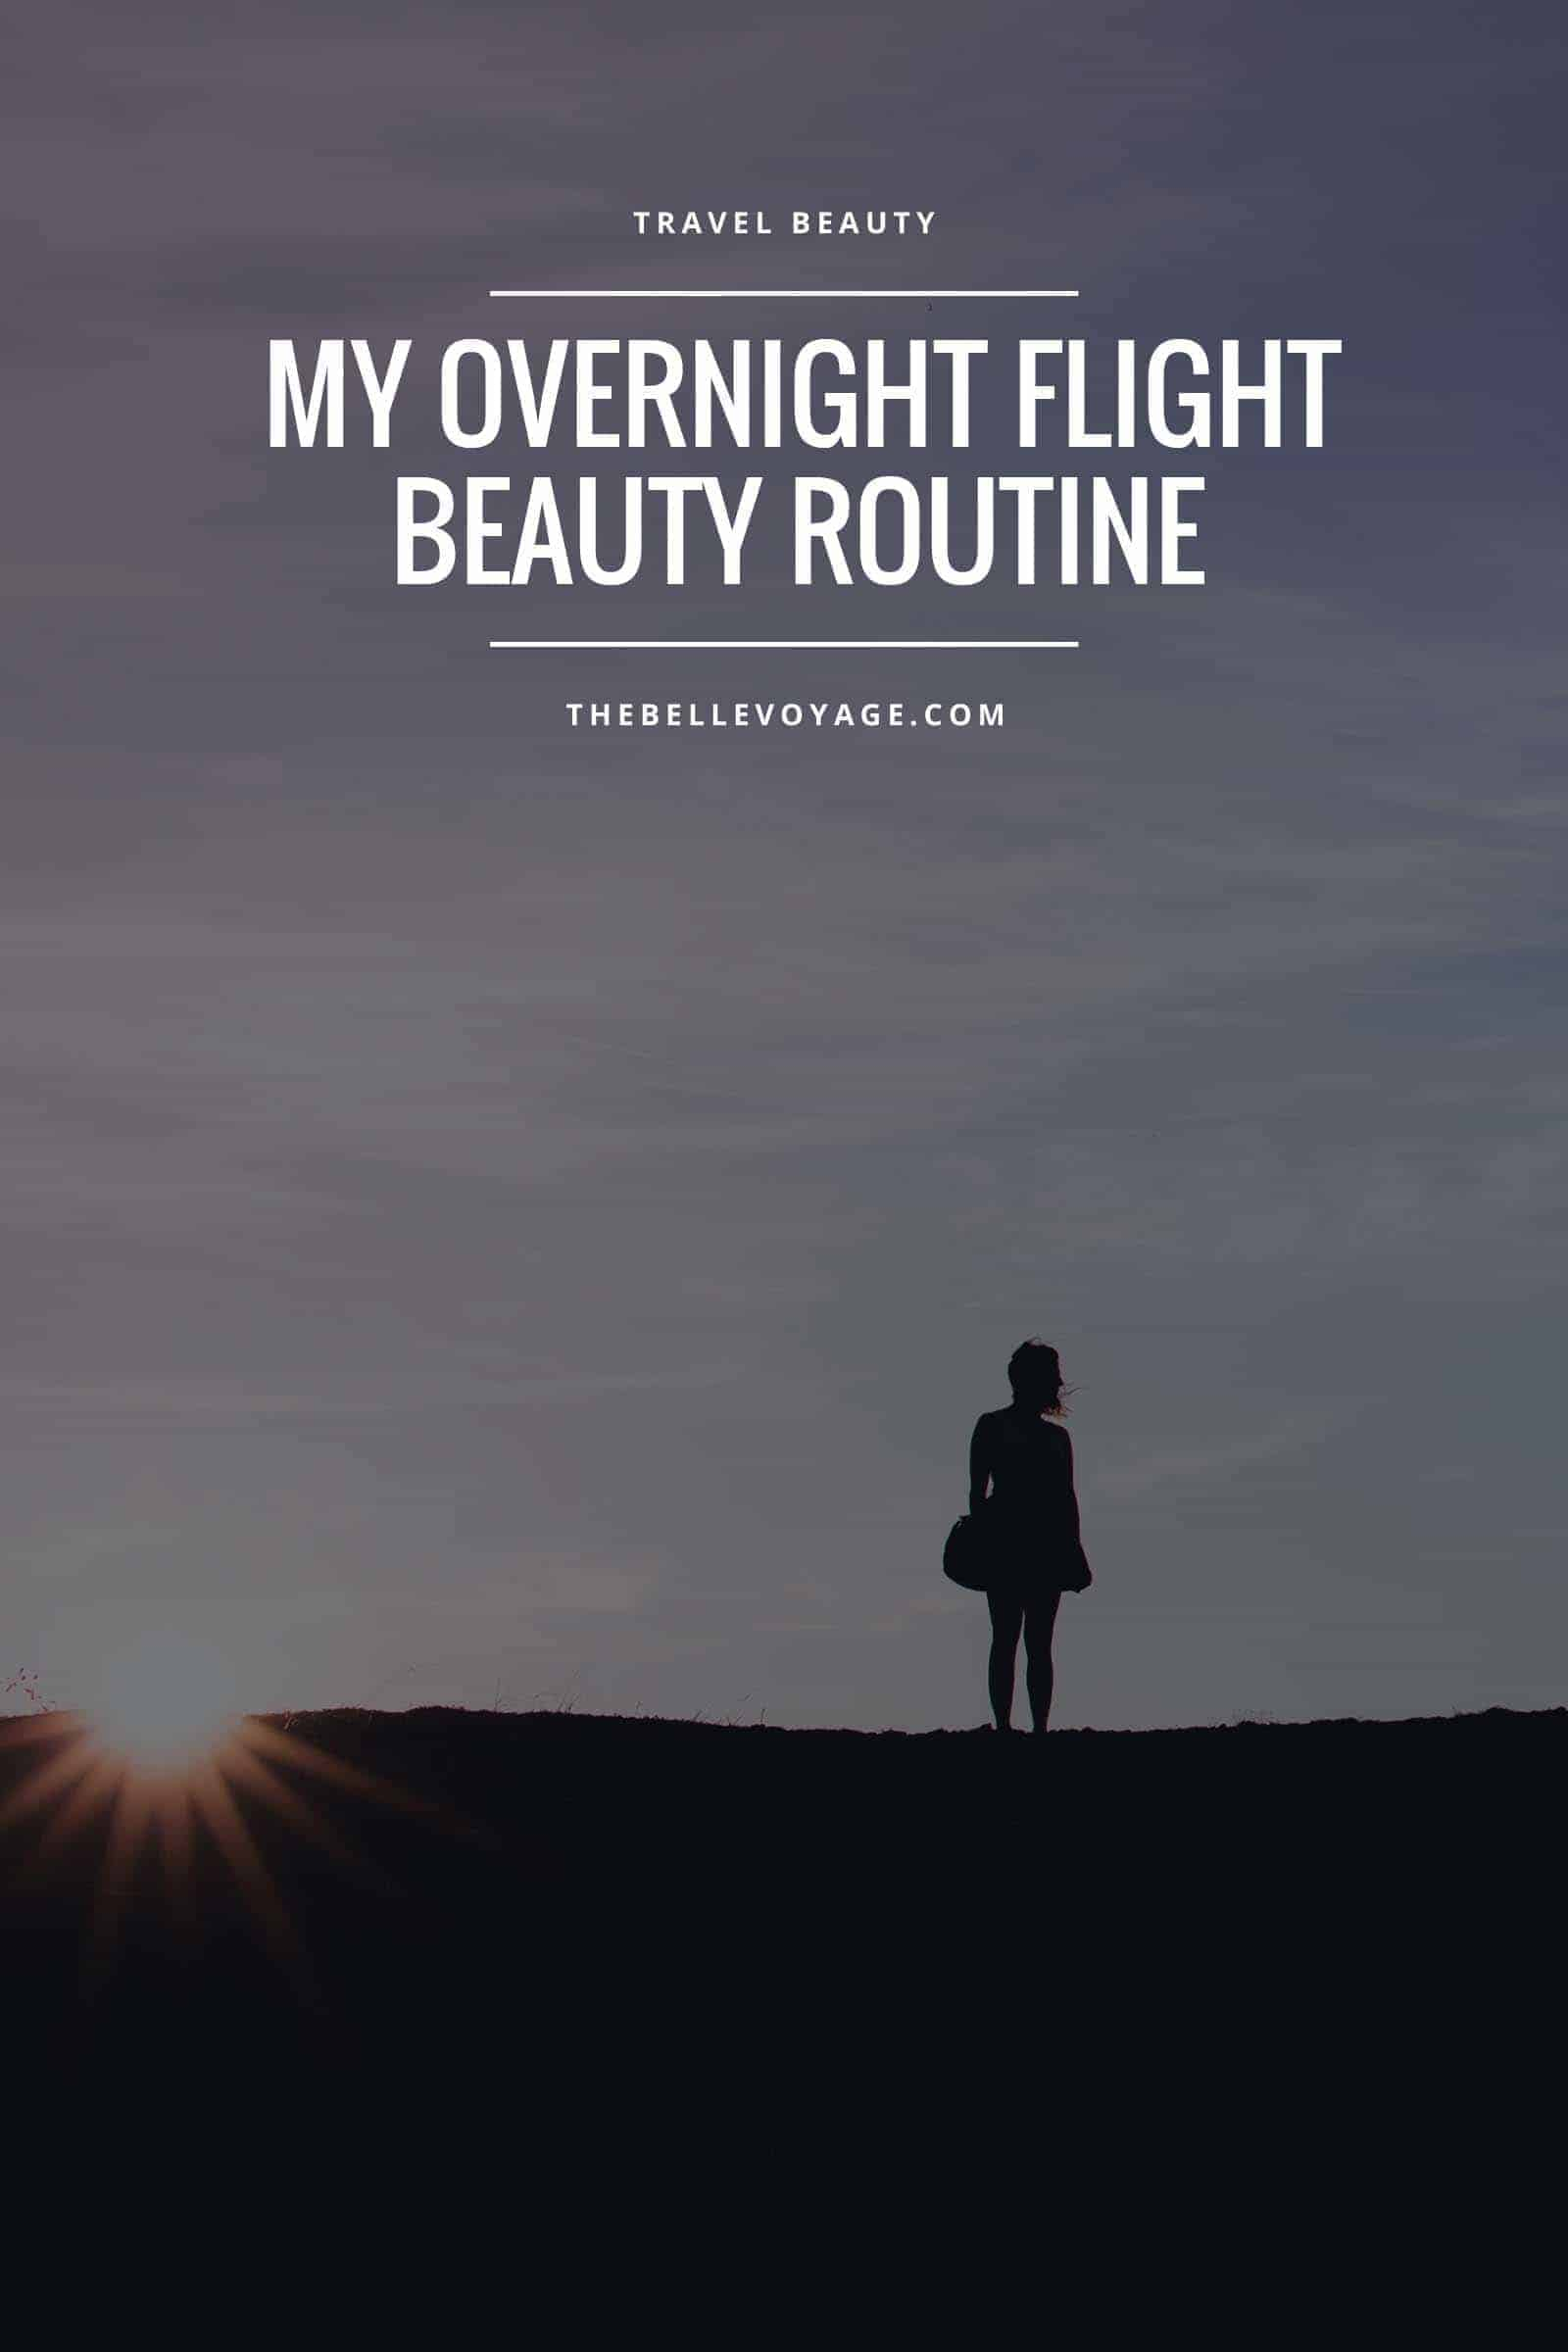 travel beauty tips and tricks, overnight flight tips, travel beauty essentials, travel style, airport outfit